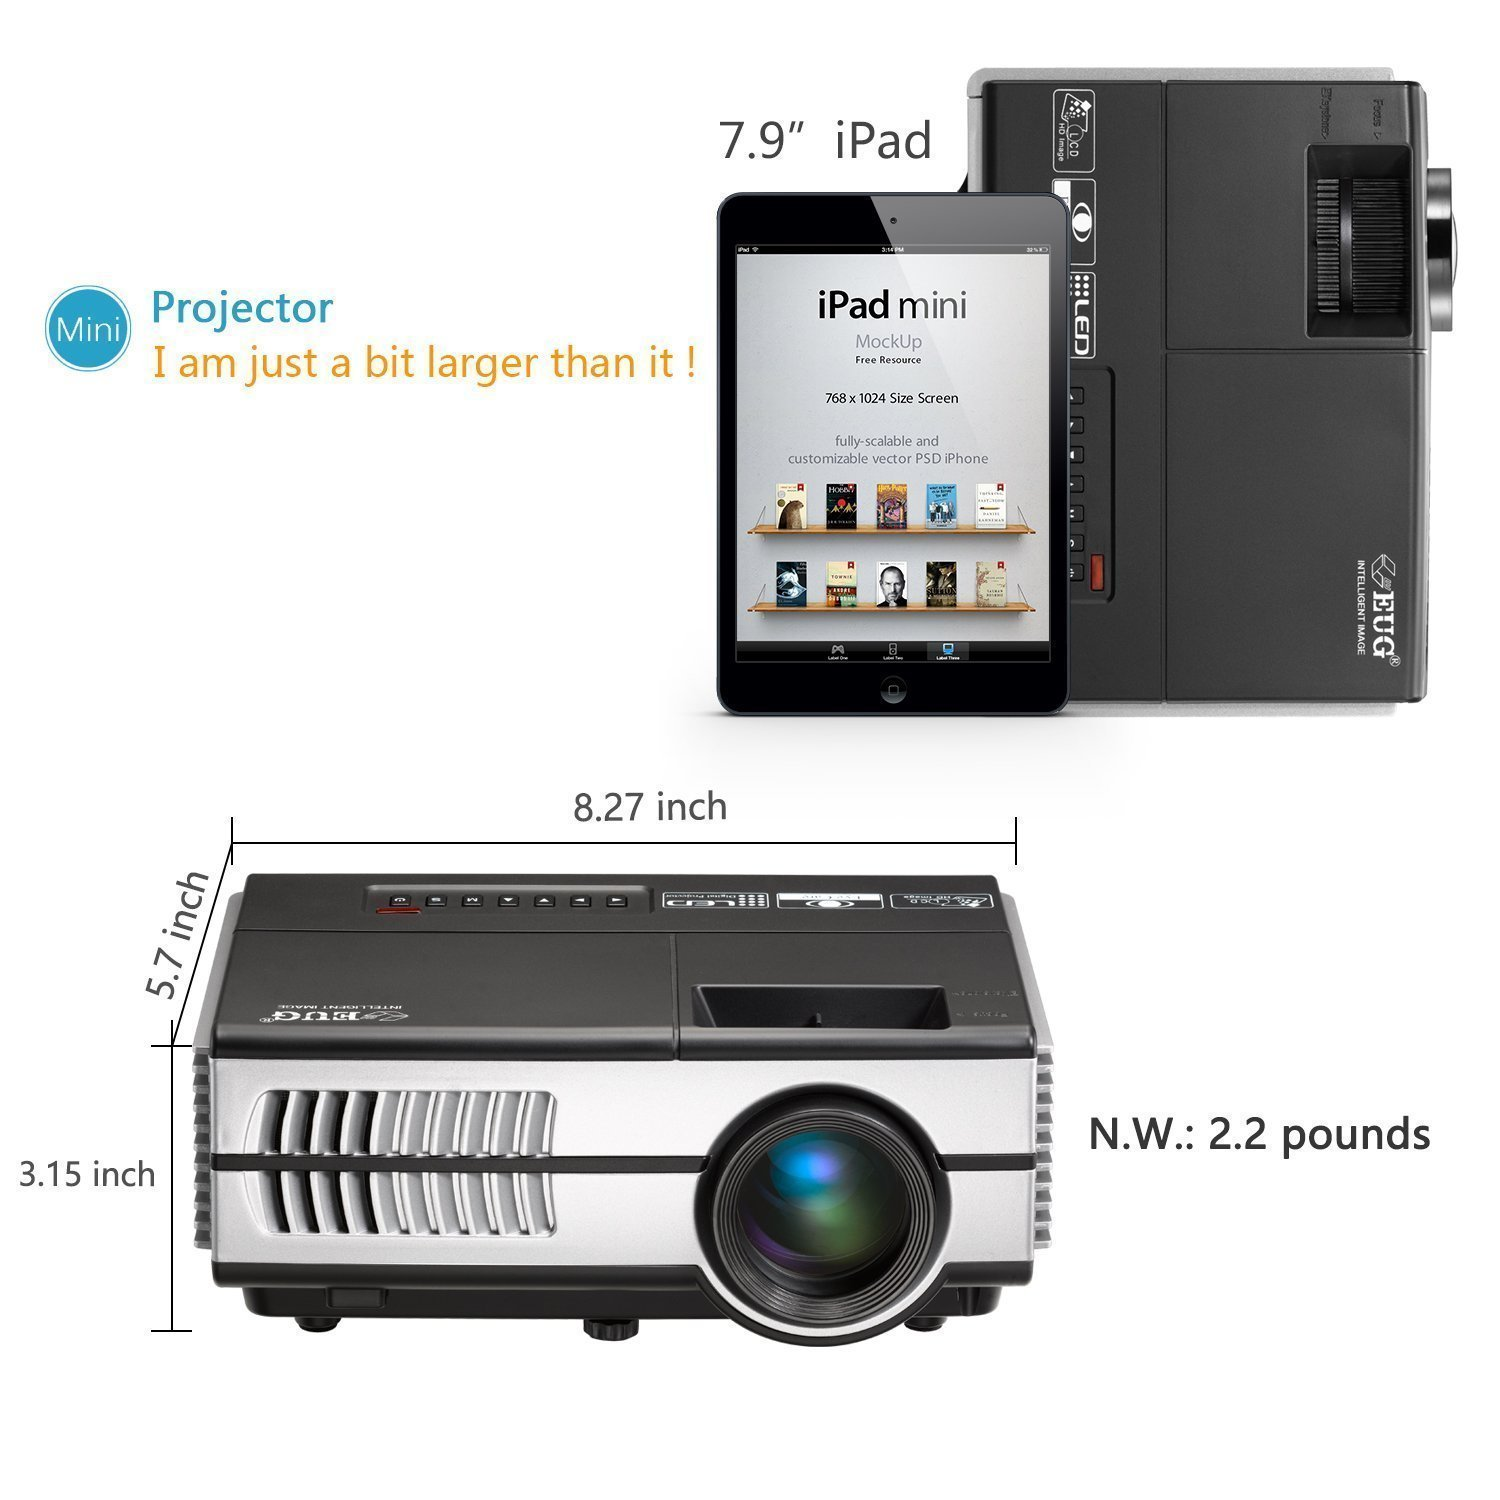 Wireless Mini Projector LED LCD- 1500 Lumens 1080P Multimedia for Home Theater Cinema Movie Video Games Outdoor Party including Built-in Speaker, Keystone, HDMI, USB, VGA, 3.5mm Audio jack, Remote by EUG (Image #6)